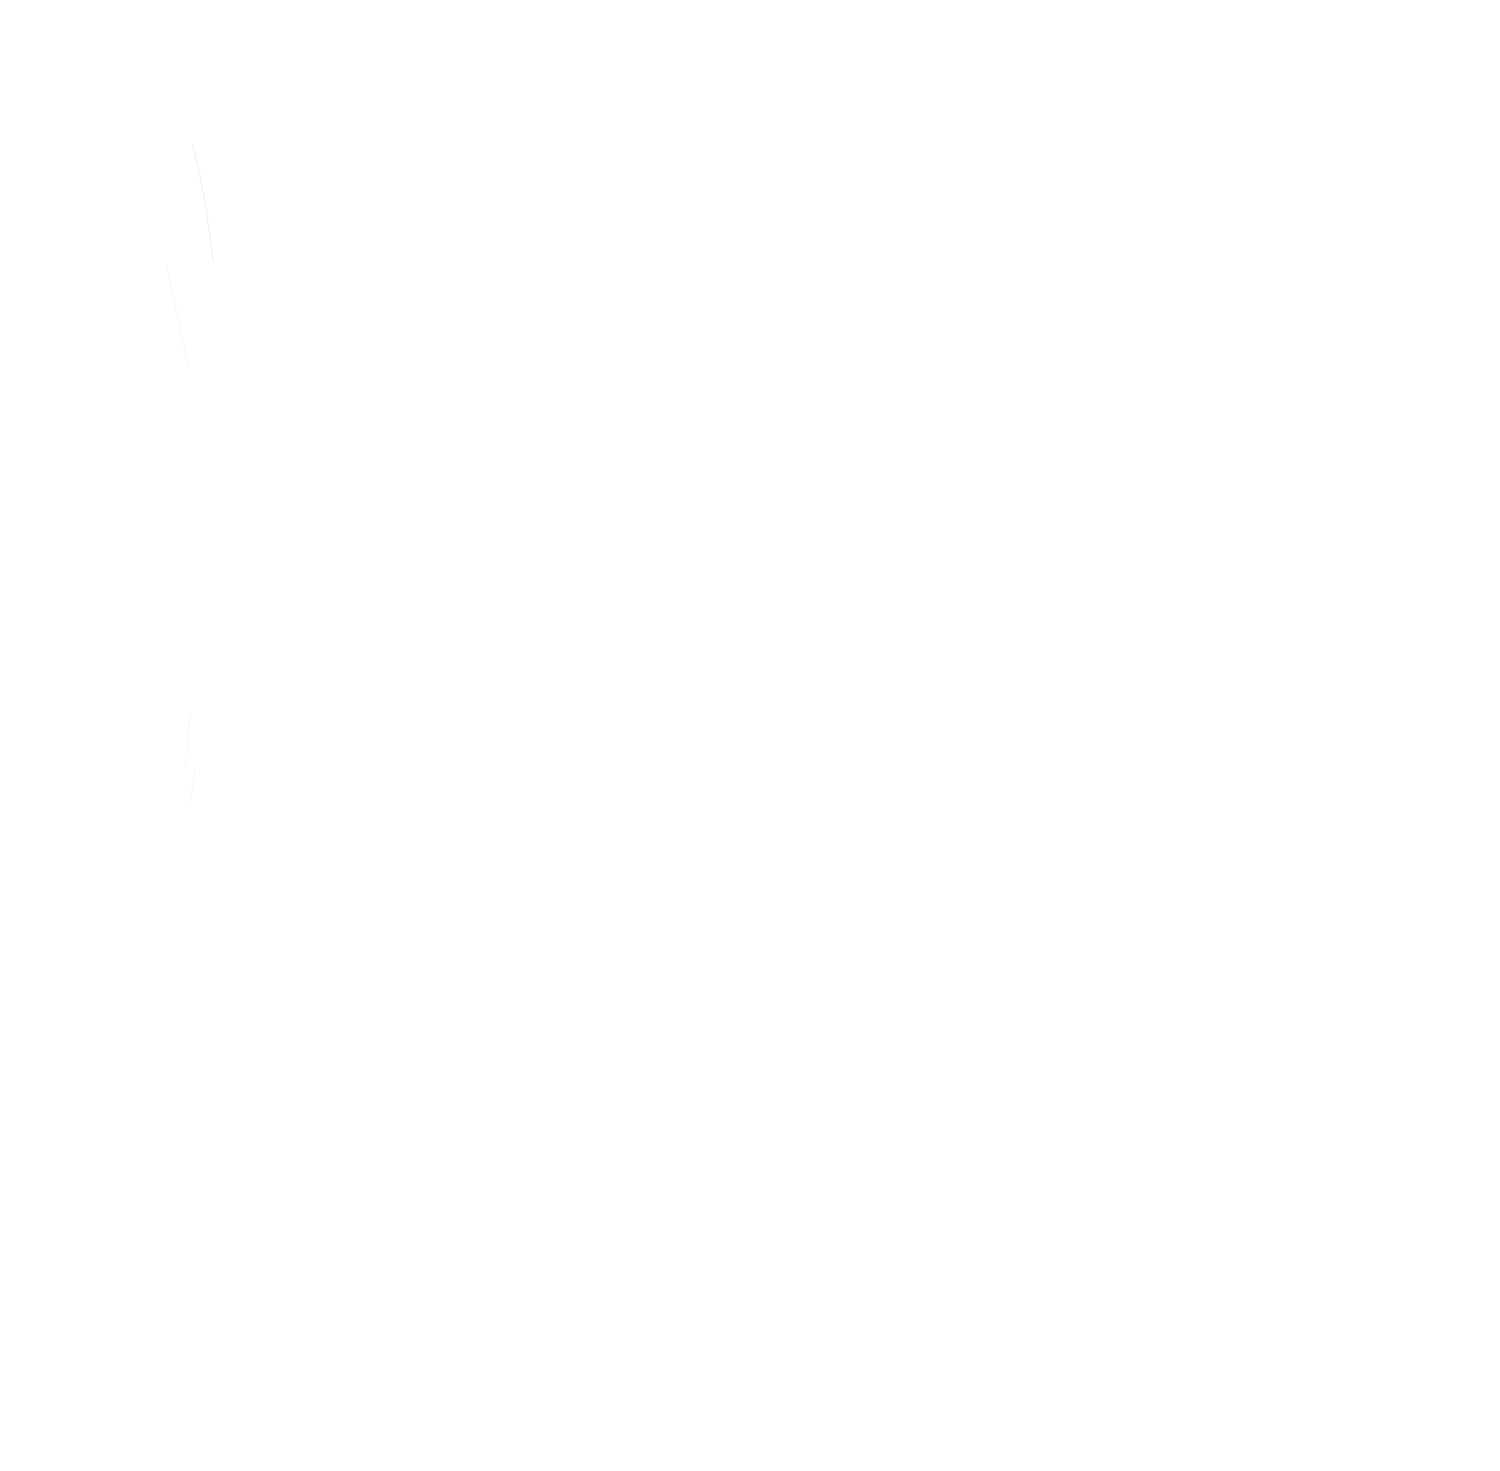 Russell Tavern, Dalby, QLD